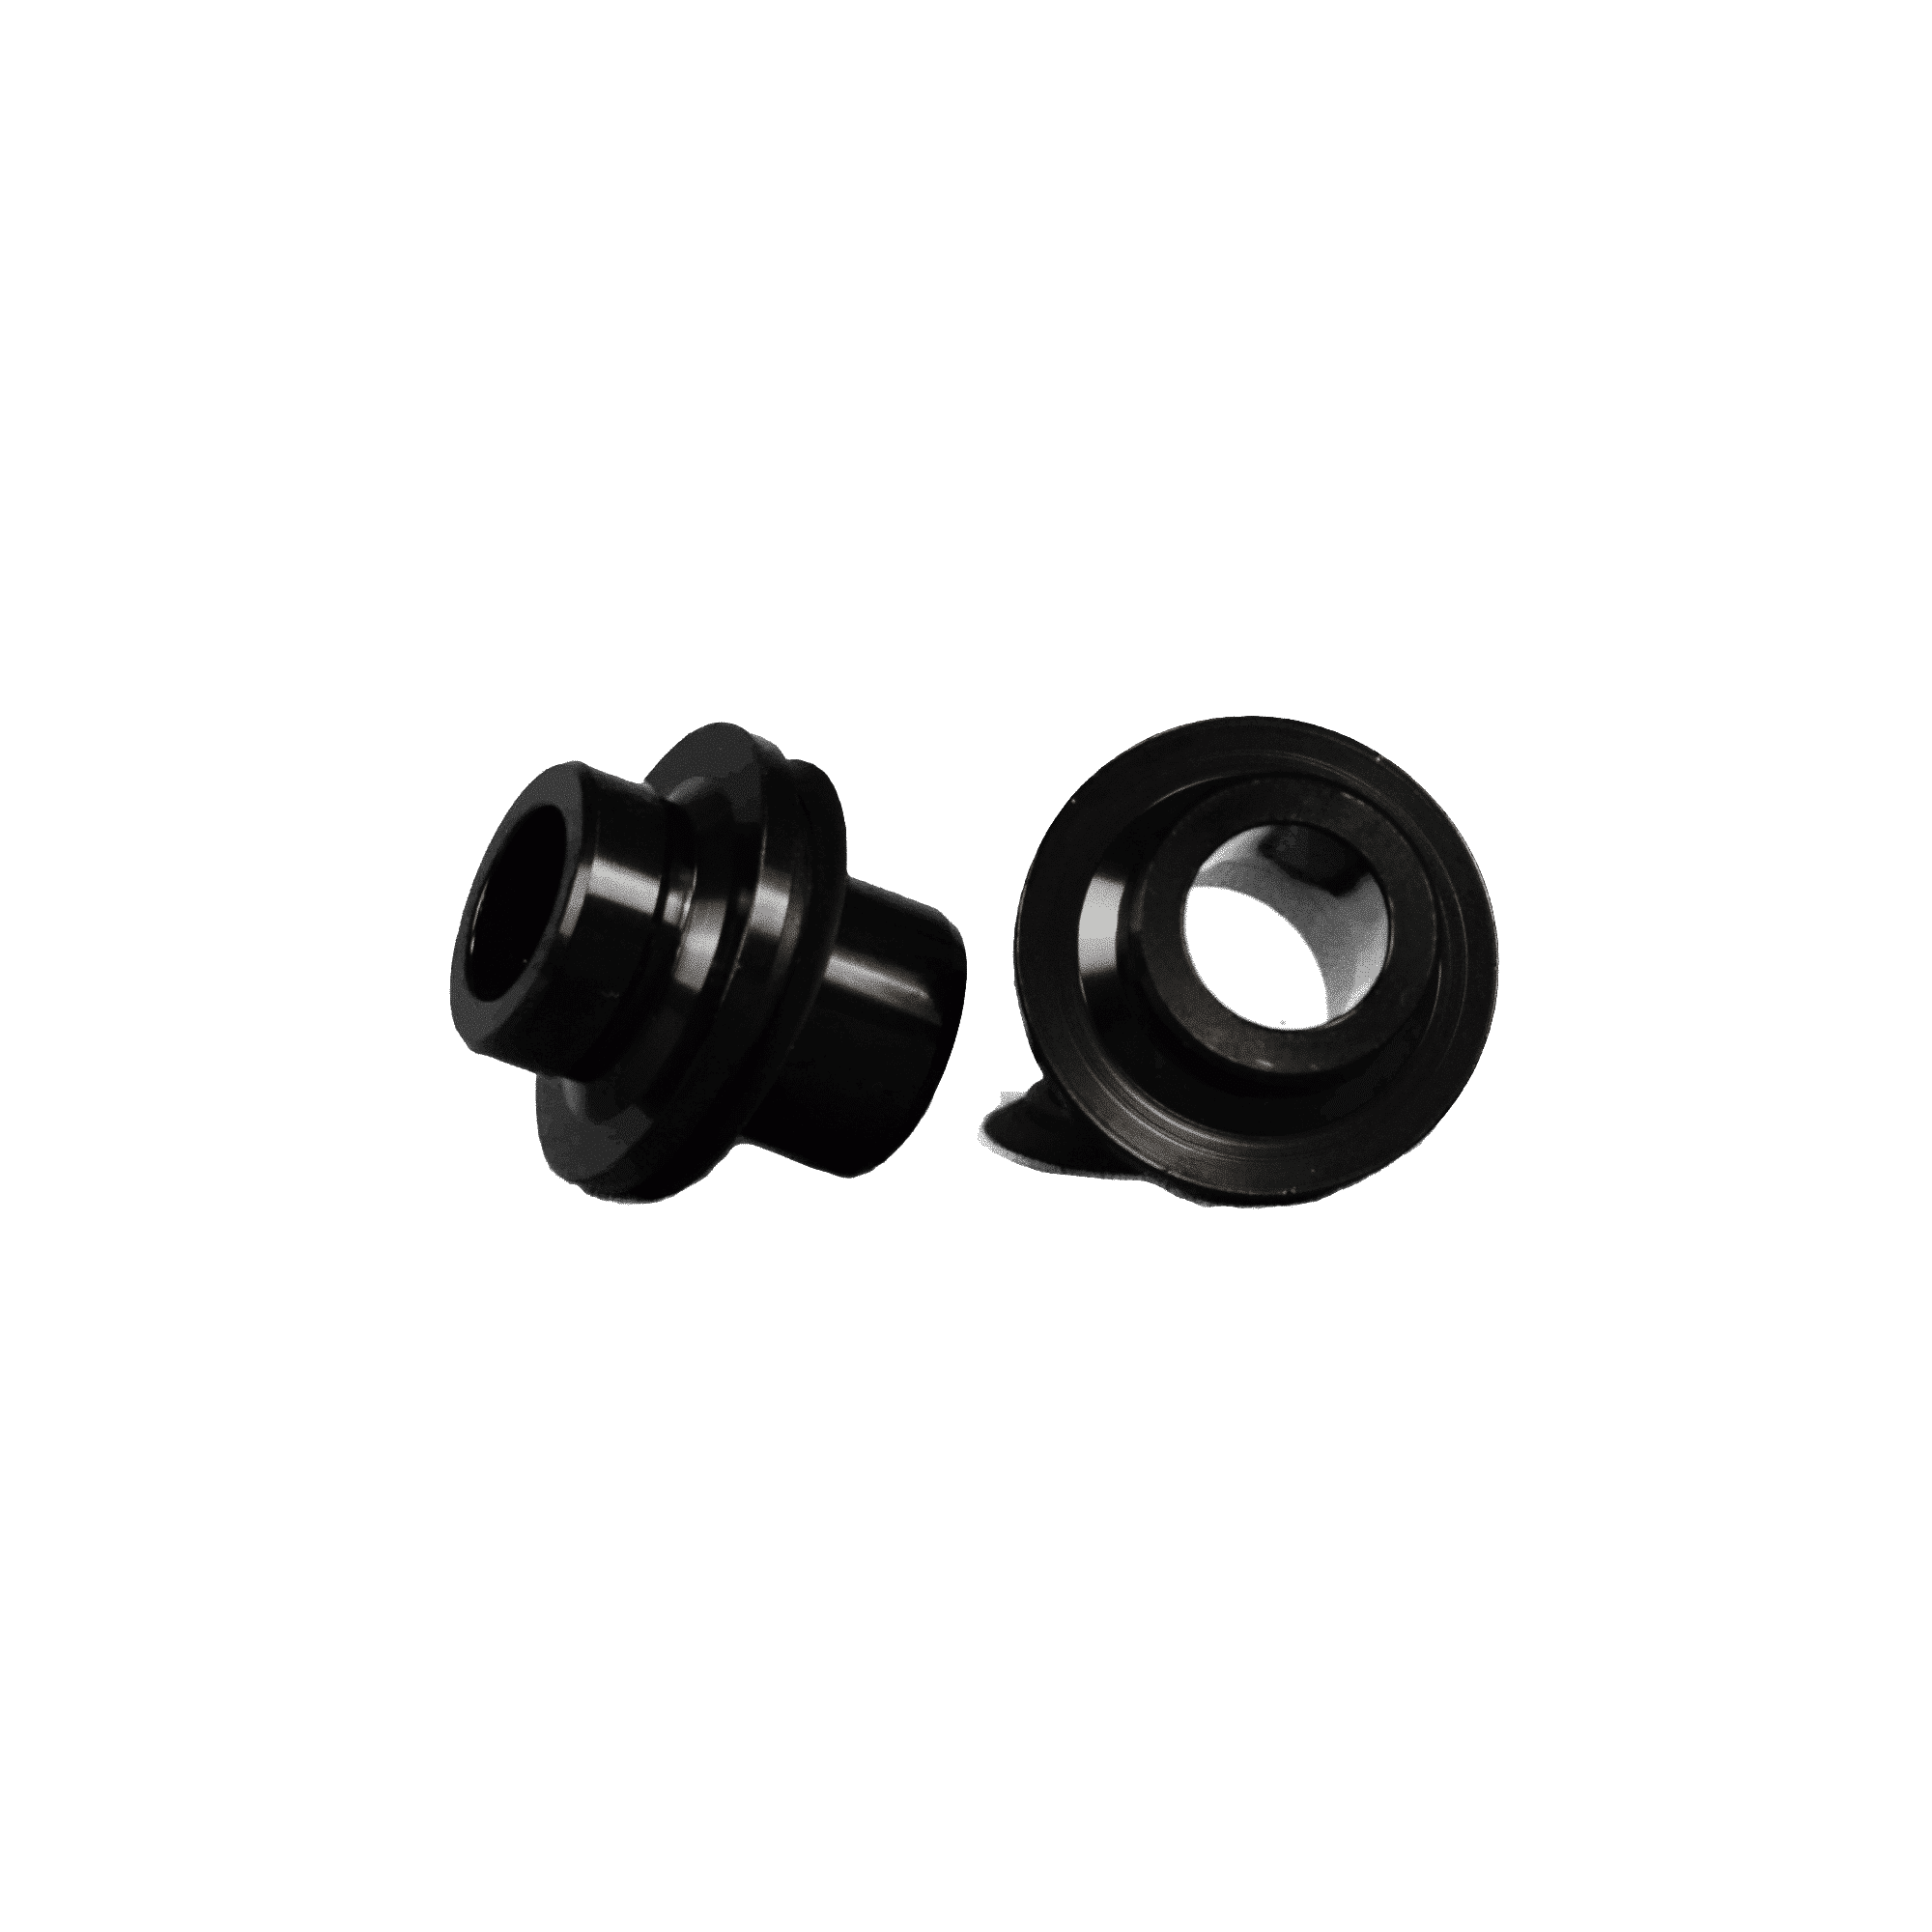 100 X 12 MM THRU AXLE ADAPTERS | 9th Wave Cycling